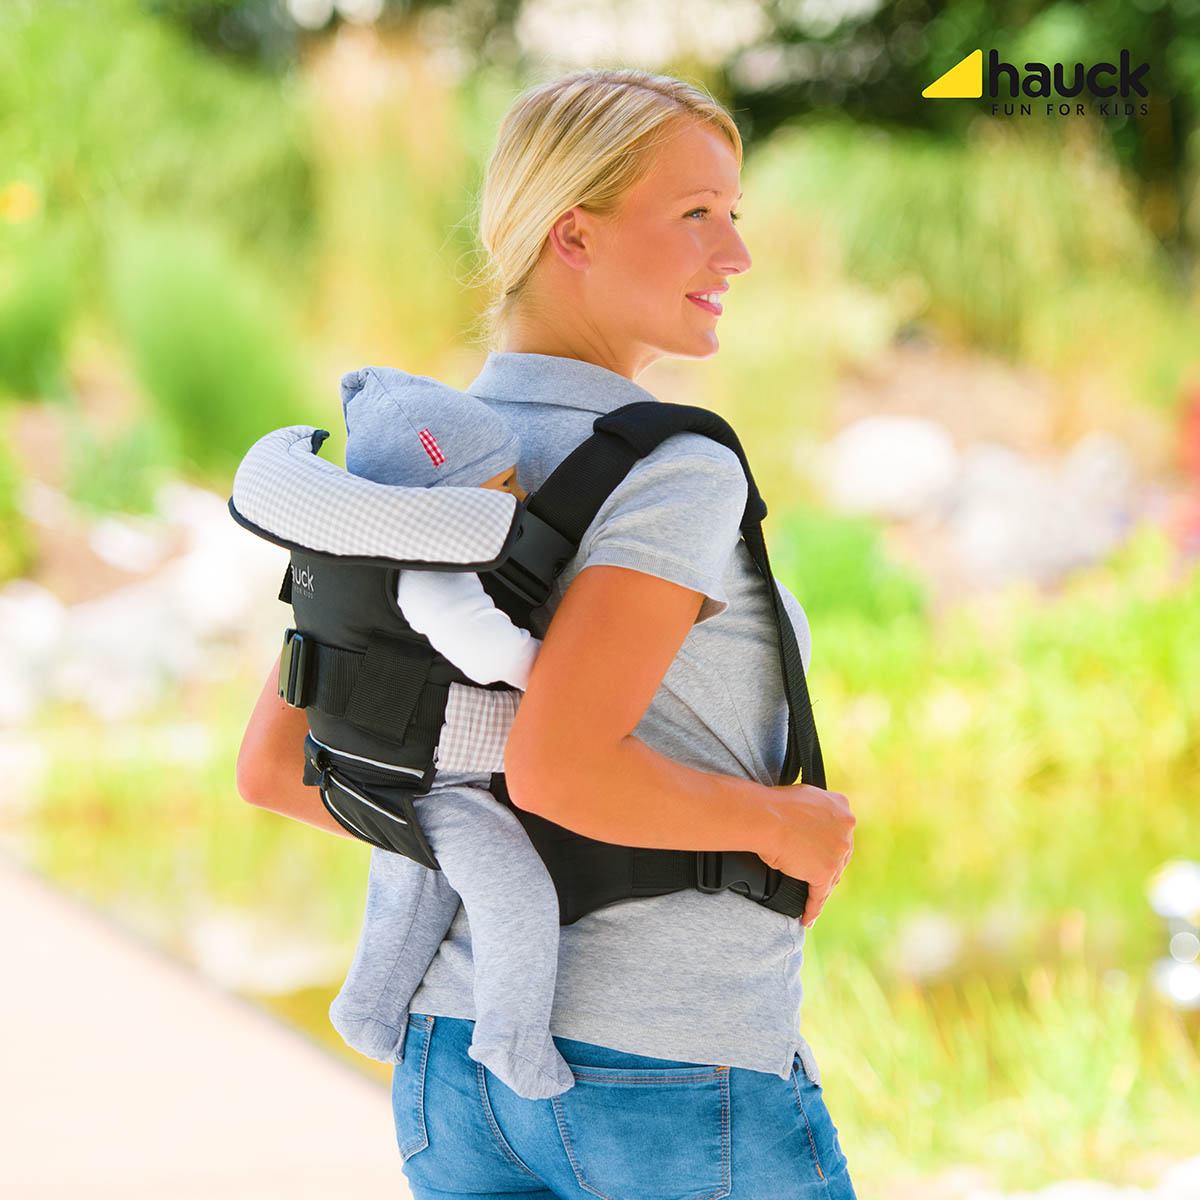 Hauck 4 Way Baby Carrier 2017 Buy At Kidsroom On Tour